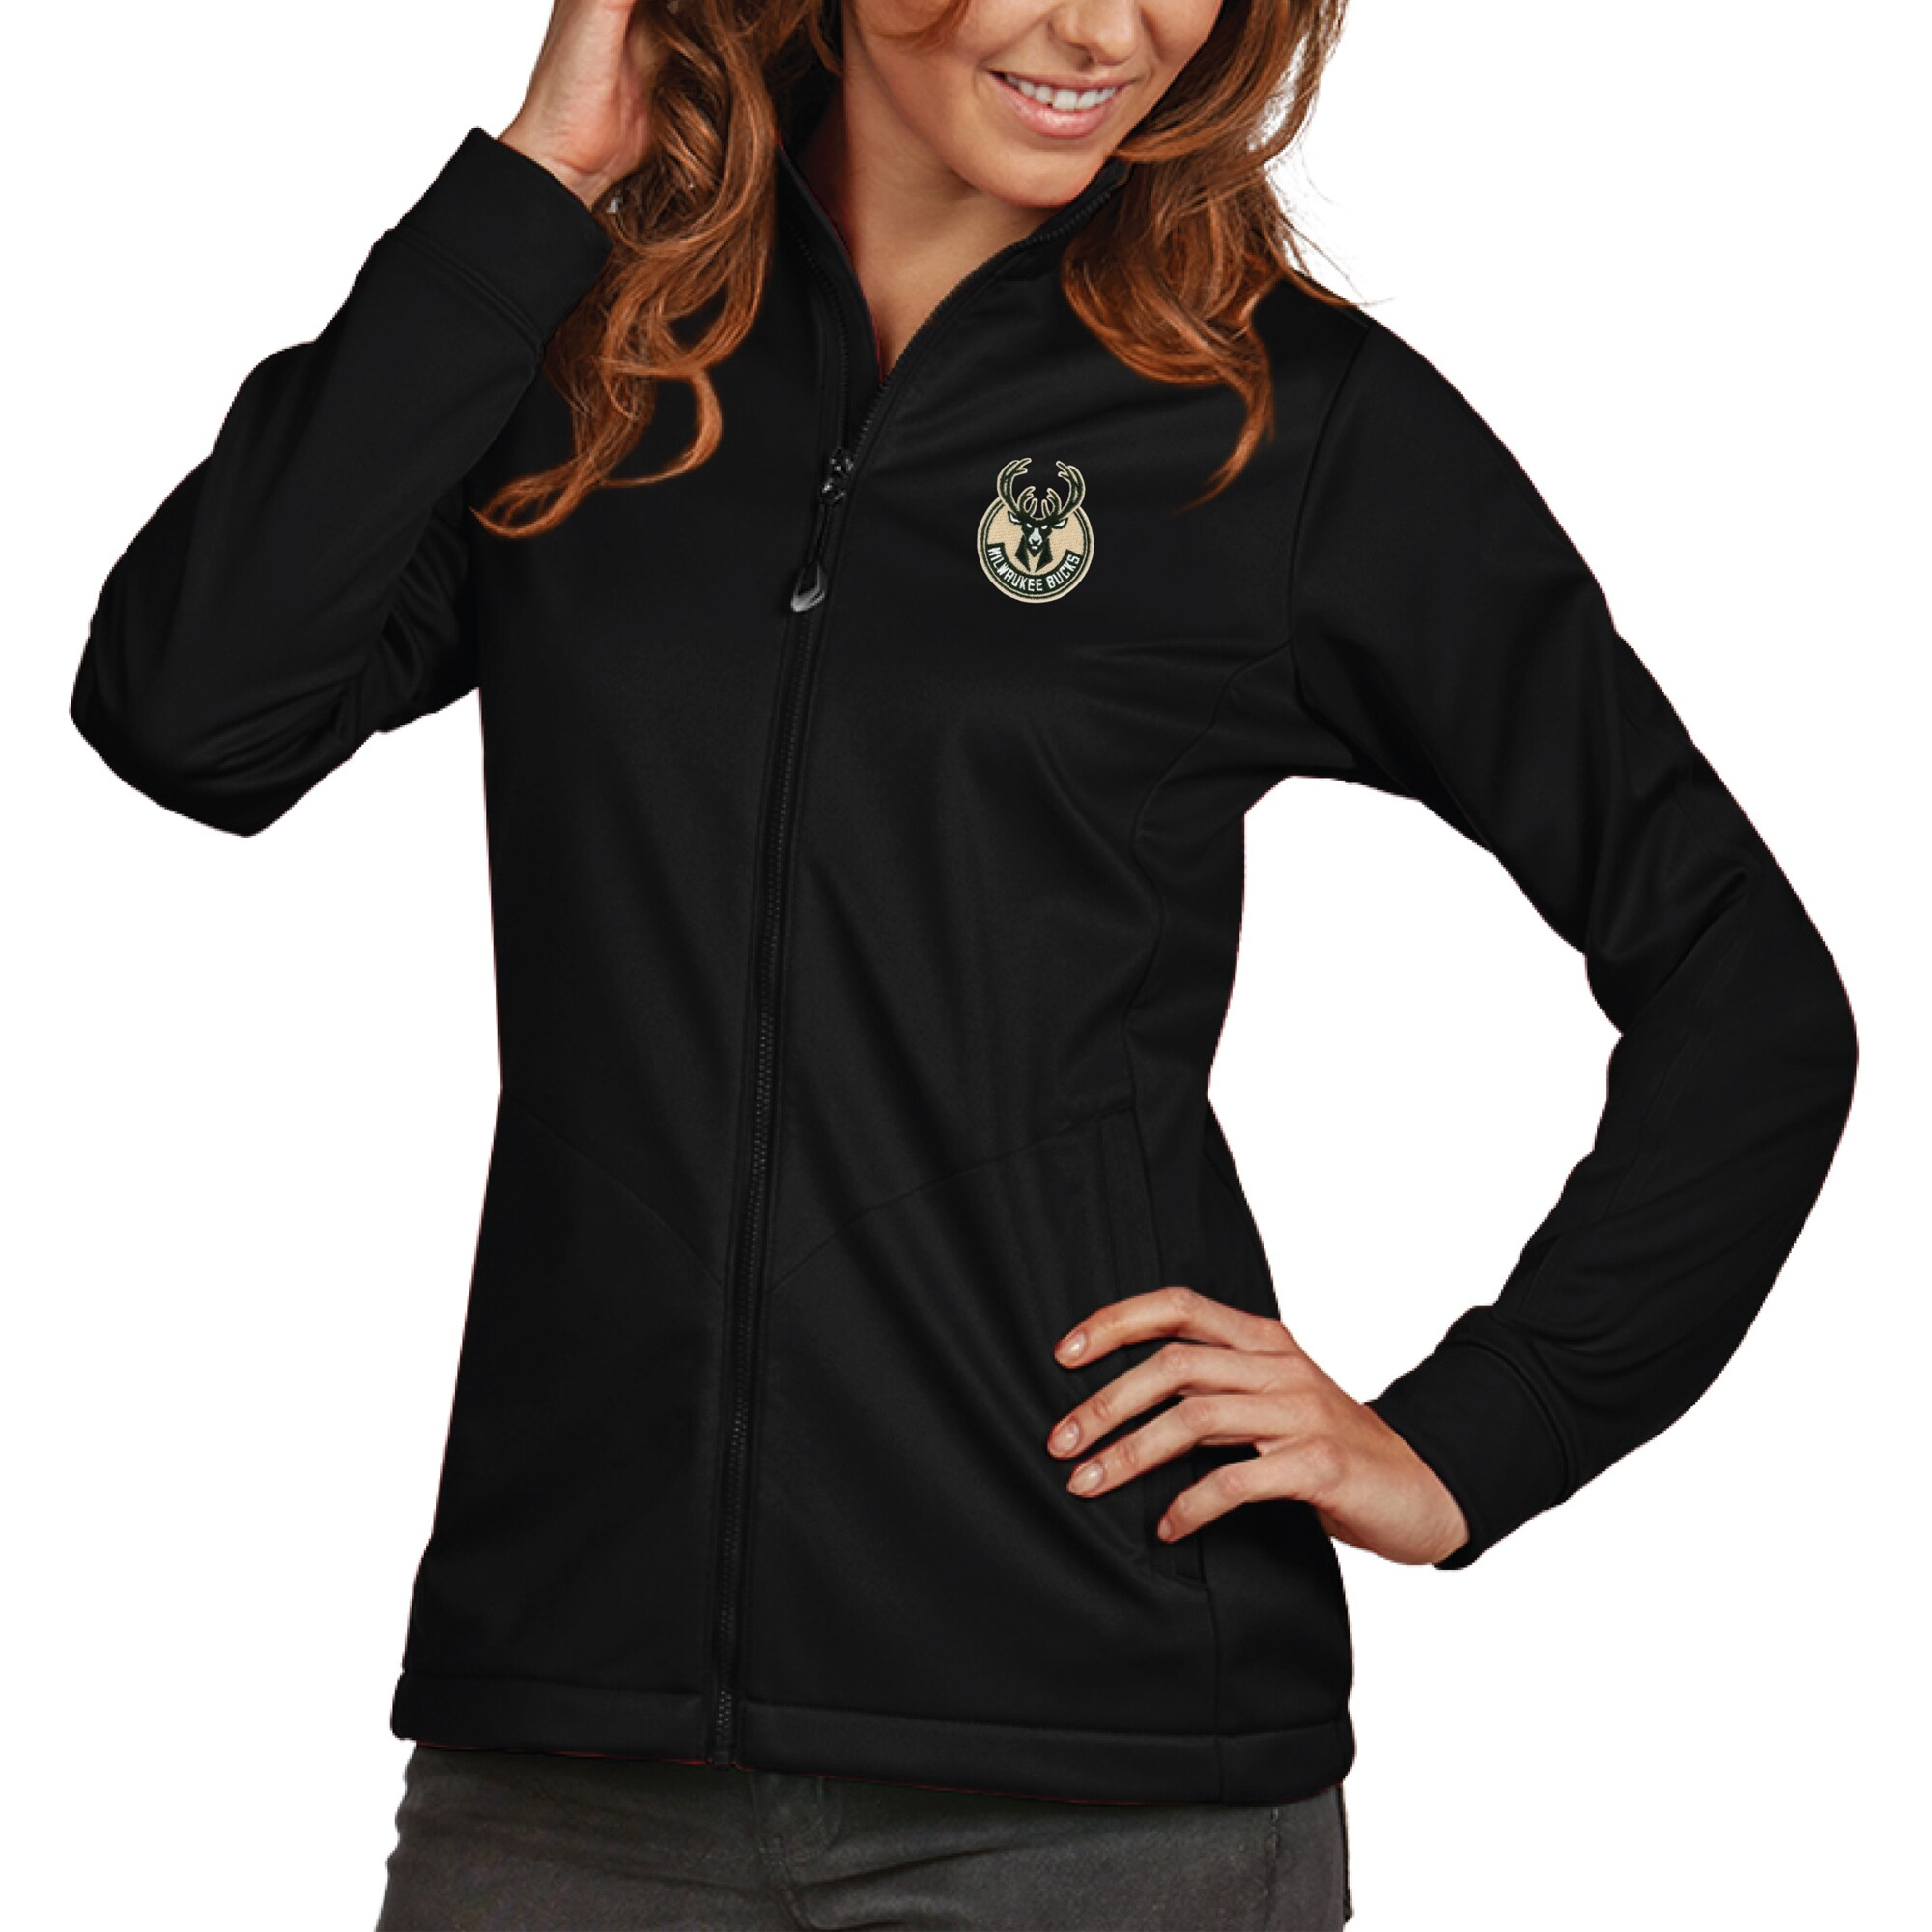 Milwaukee Bucks Antigua Women's Golf Full-Zip Jacket - Black